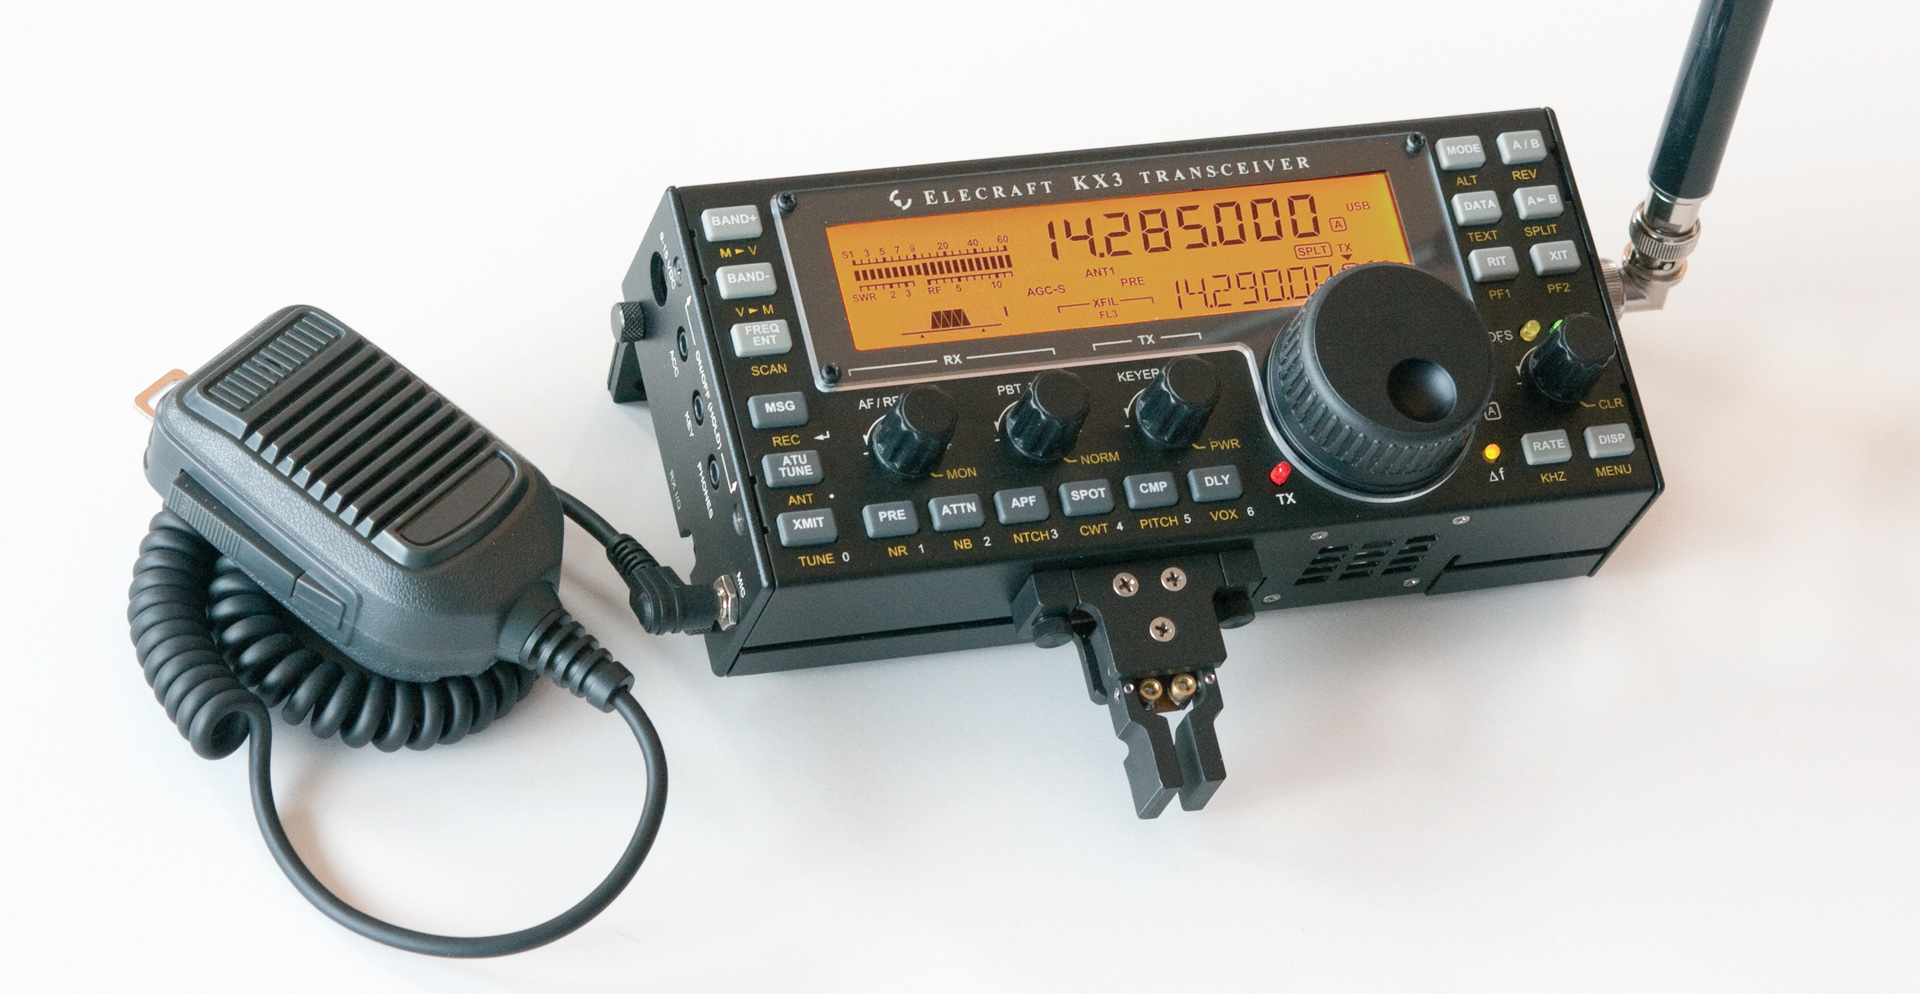 Elecraft KX3... Yes, I'm saving up...